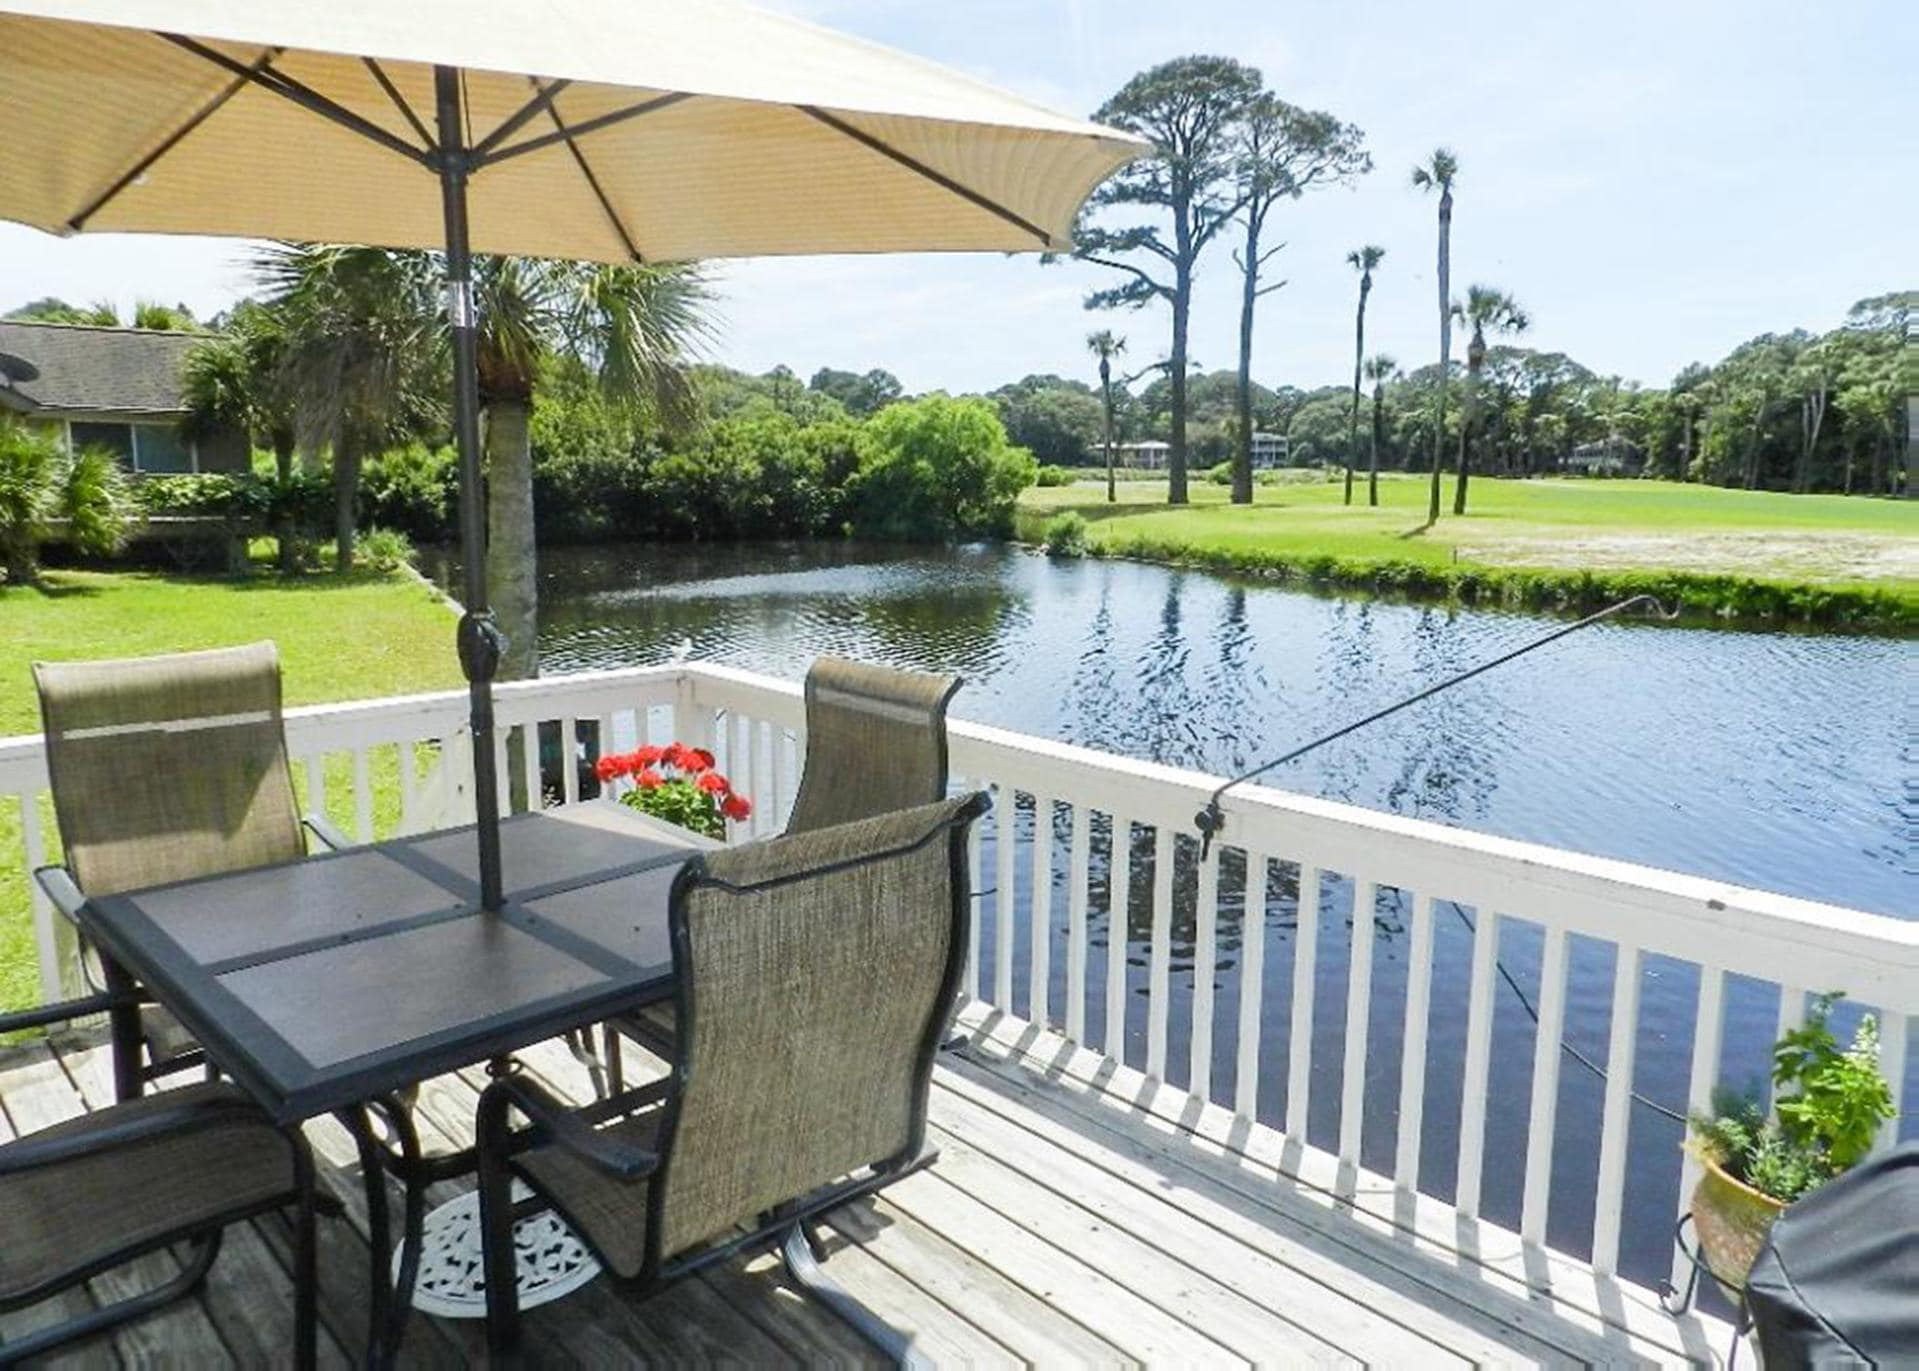 Pet-Friendly Home on Calm Lagoon with Golf Course Views